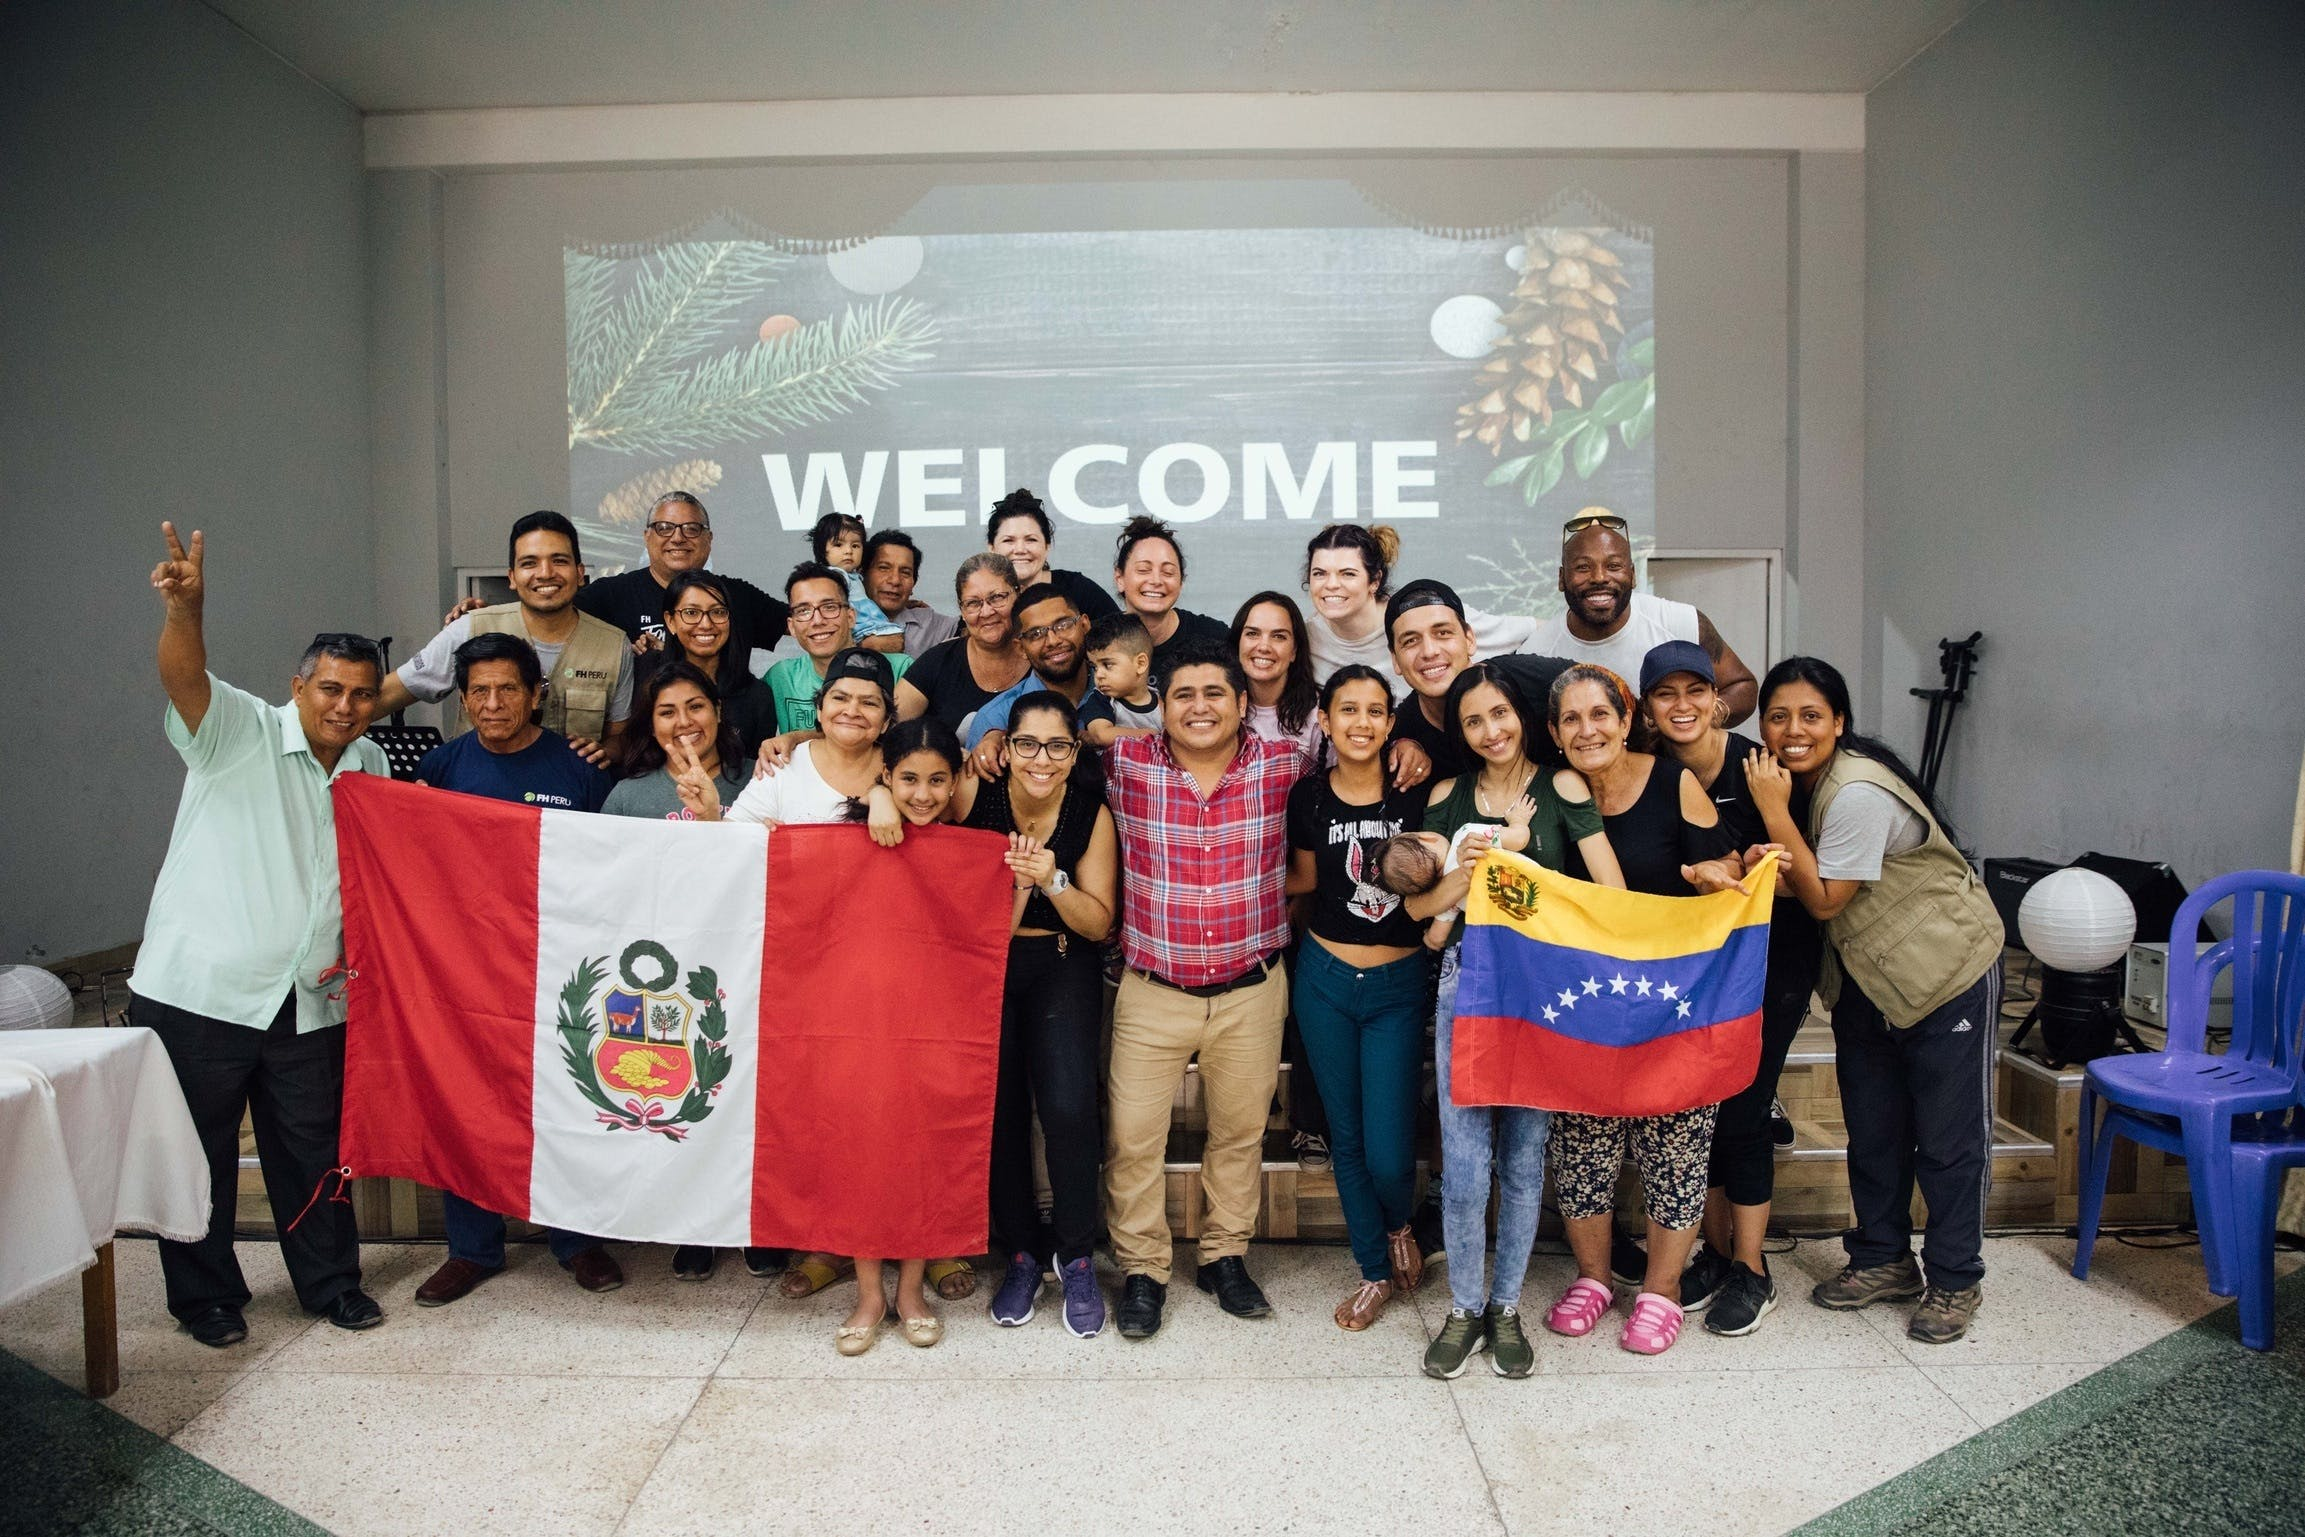 Anthony Evans visits Peru and meets Venezuelan refugees, seen in a group shot here holding up the Peru and Venezuela flags